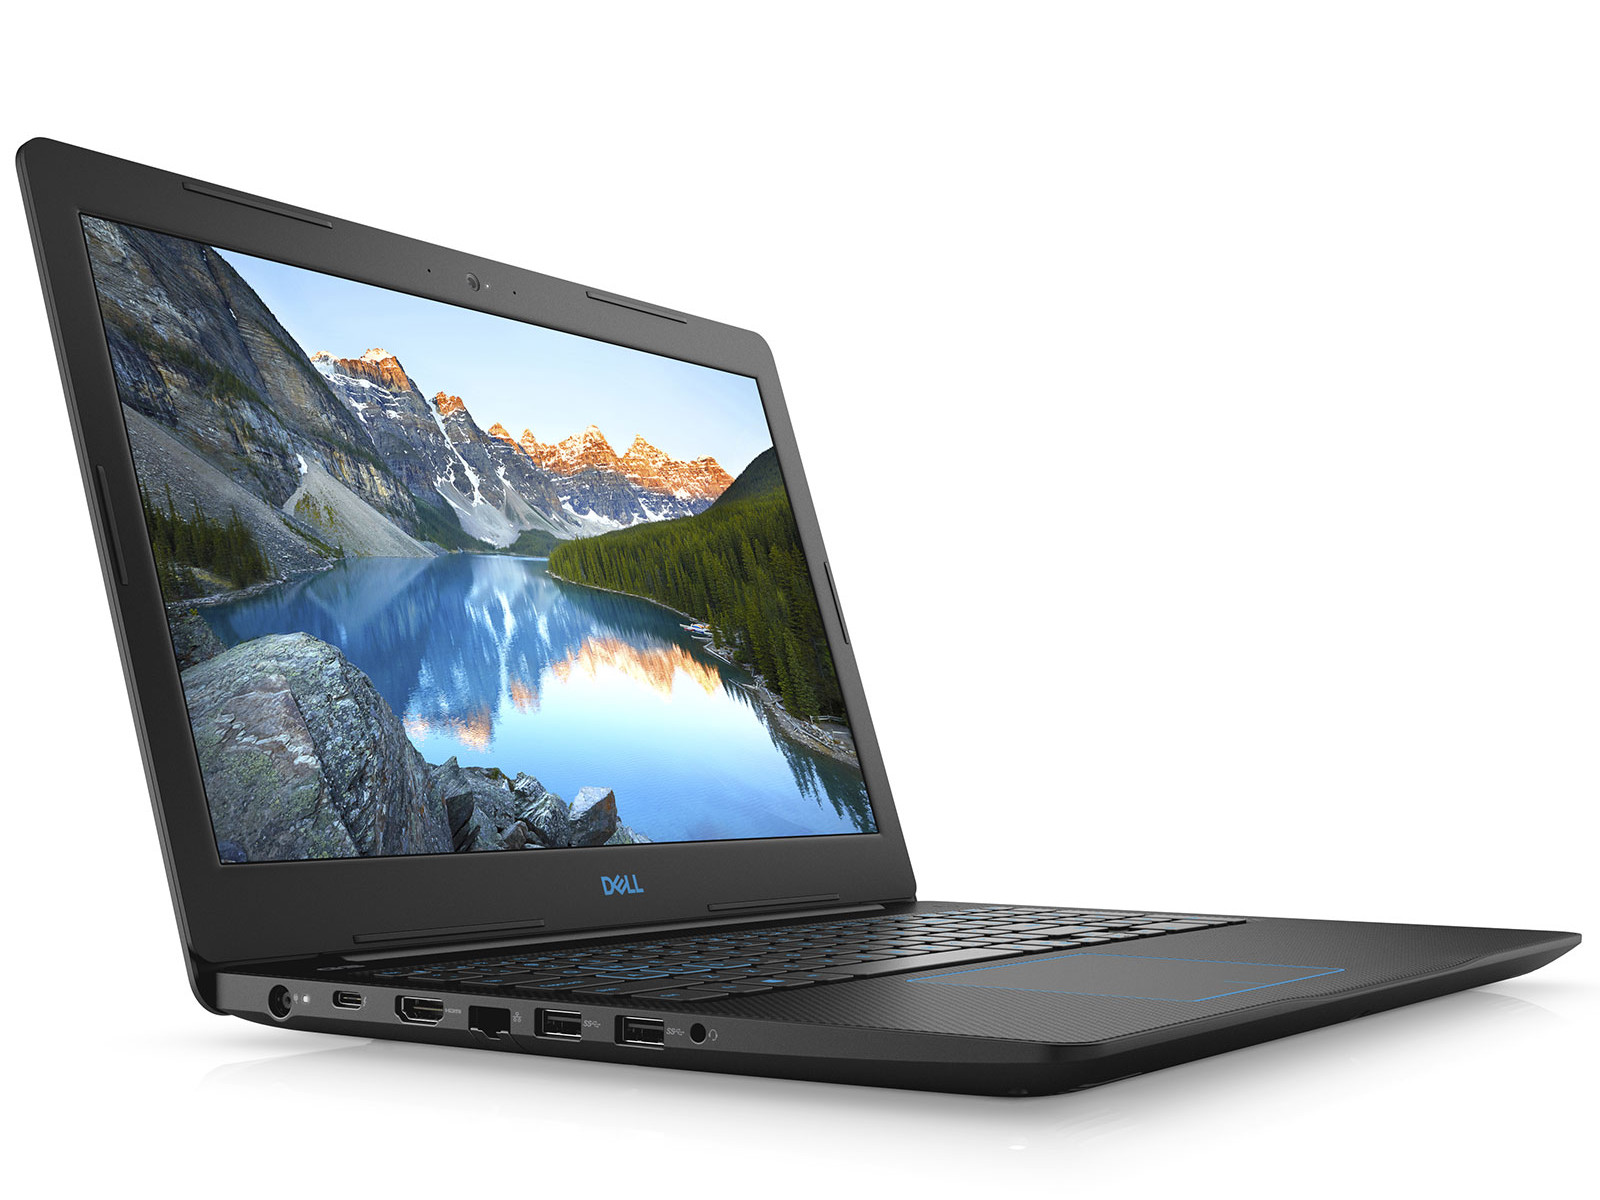 Image 1 : [Promo] Le PC portable Gamer Dell G3 (GTX 1060) à 1030 €